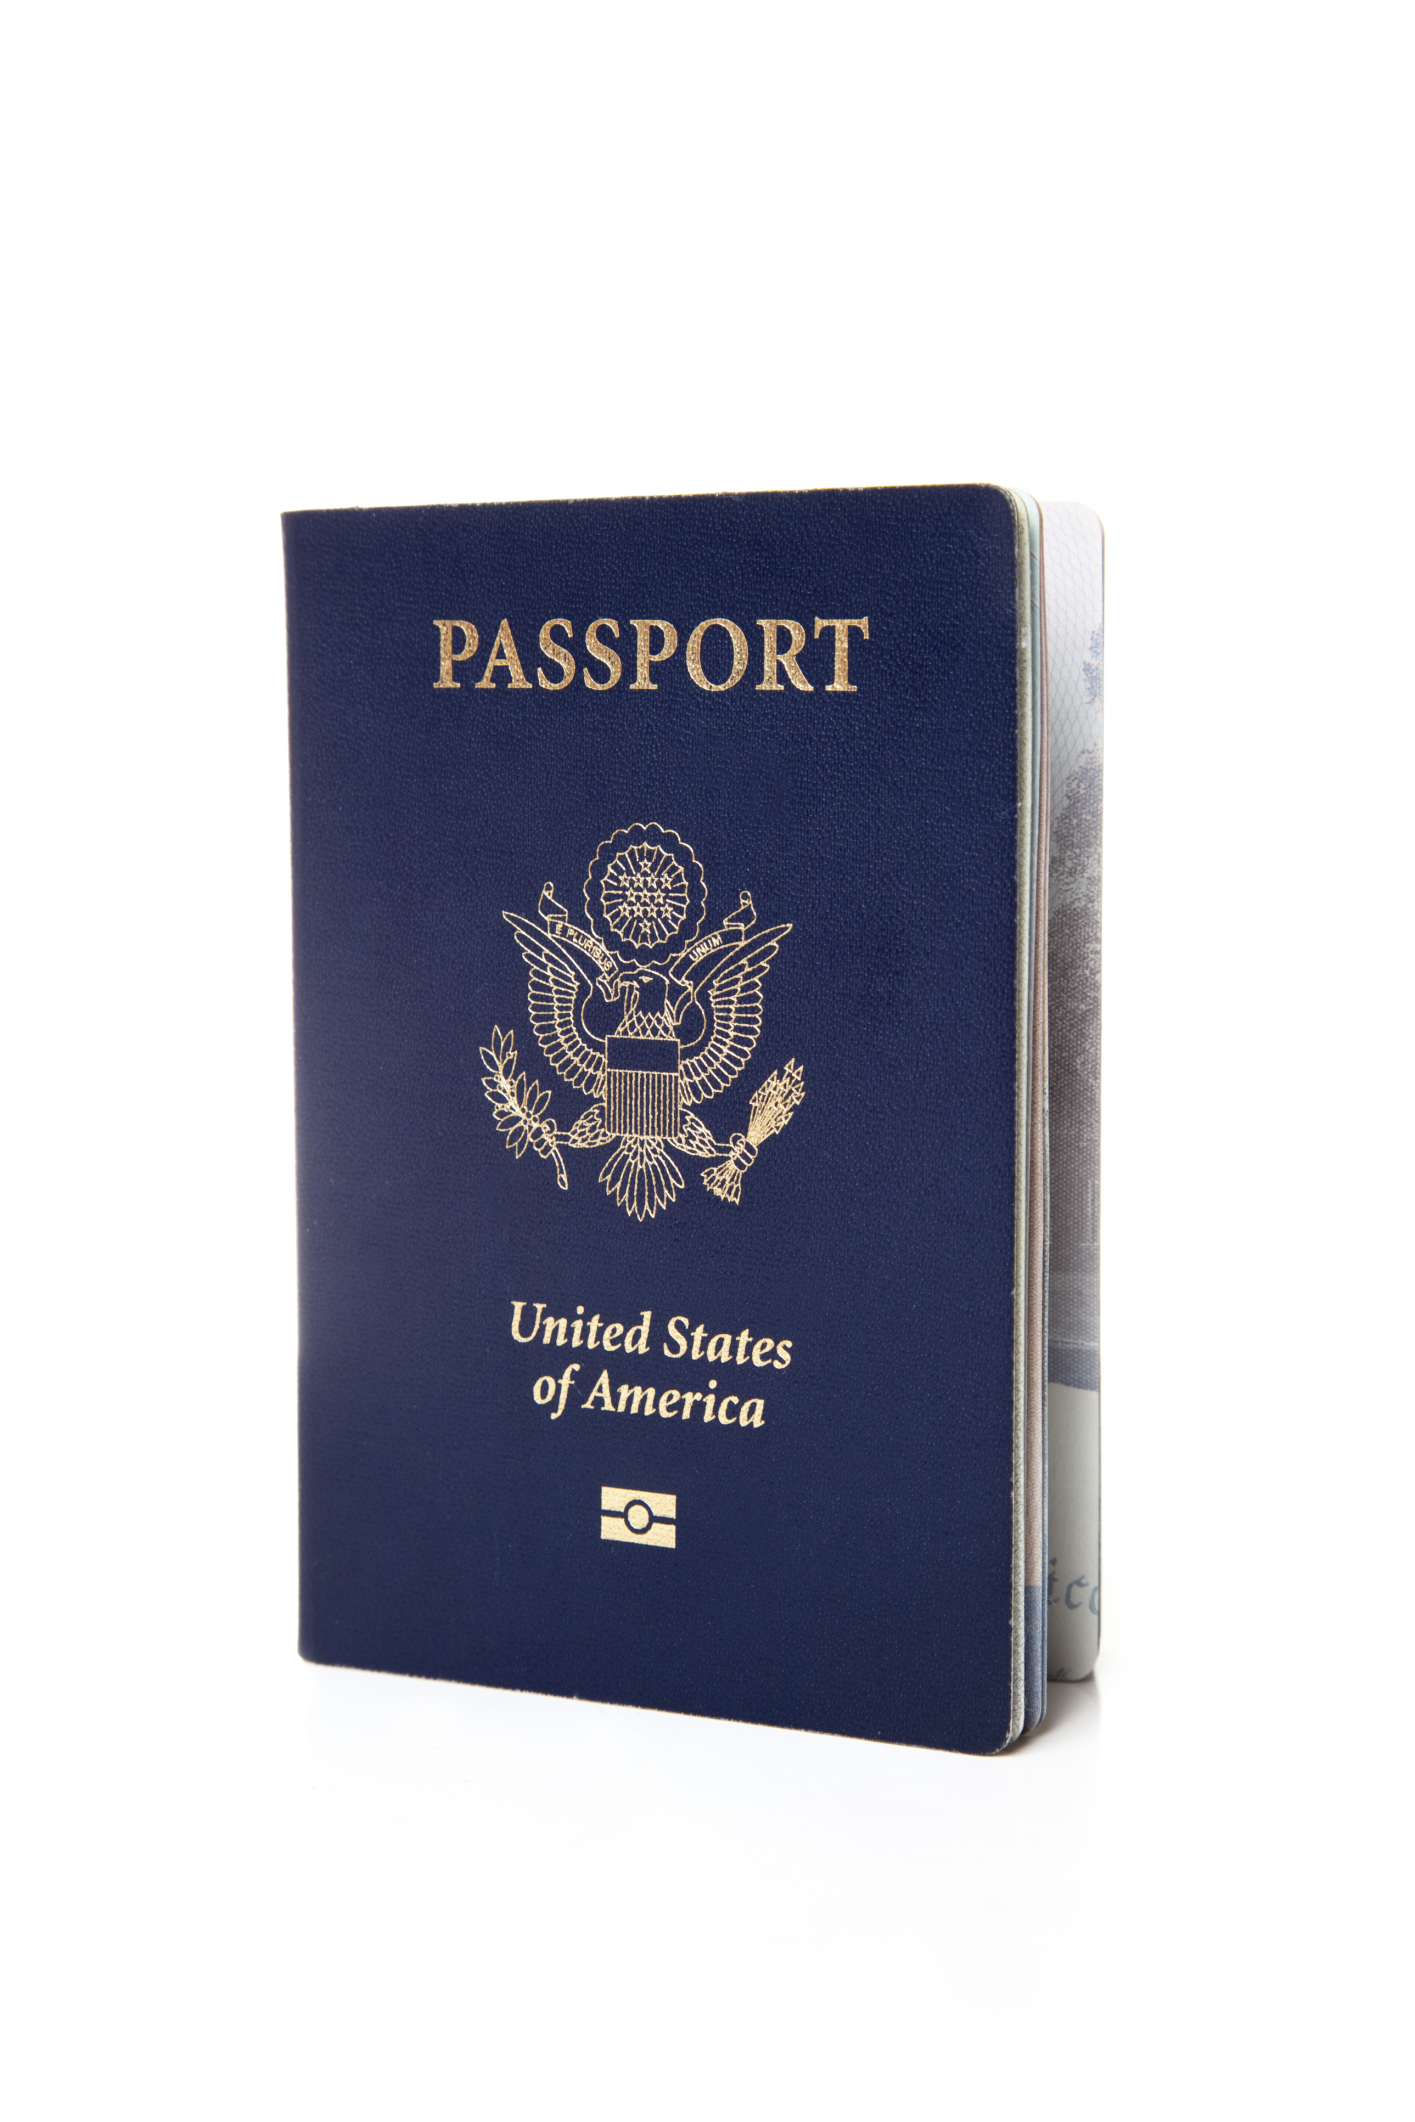 How to Change Your Birth Date on Your Passport | Getaway Tips